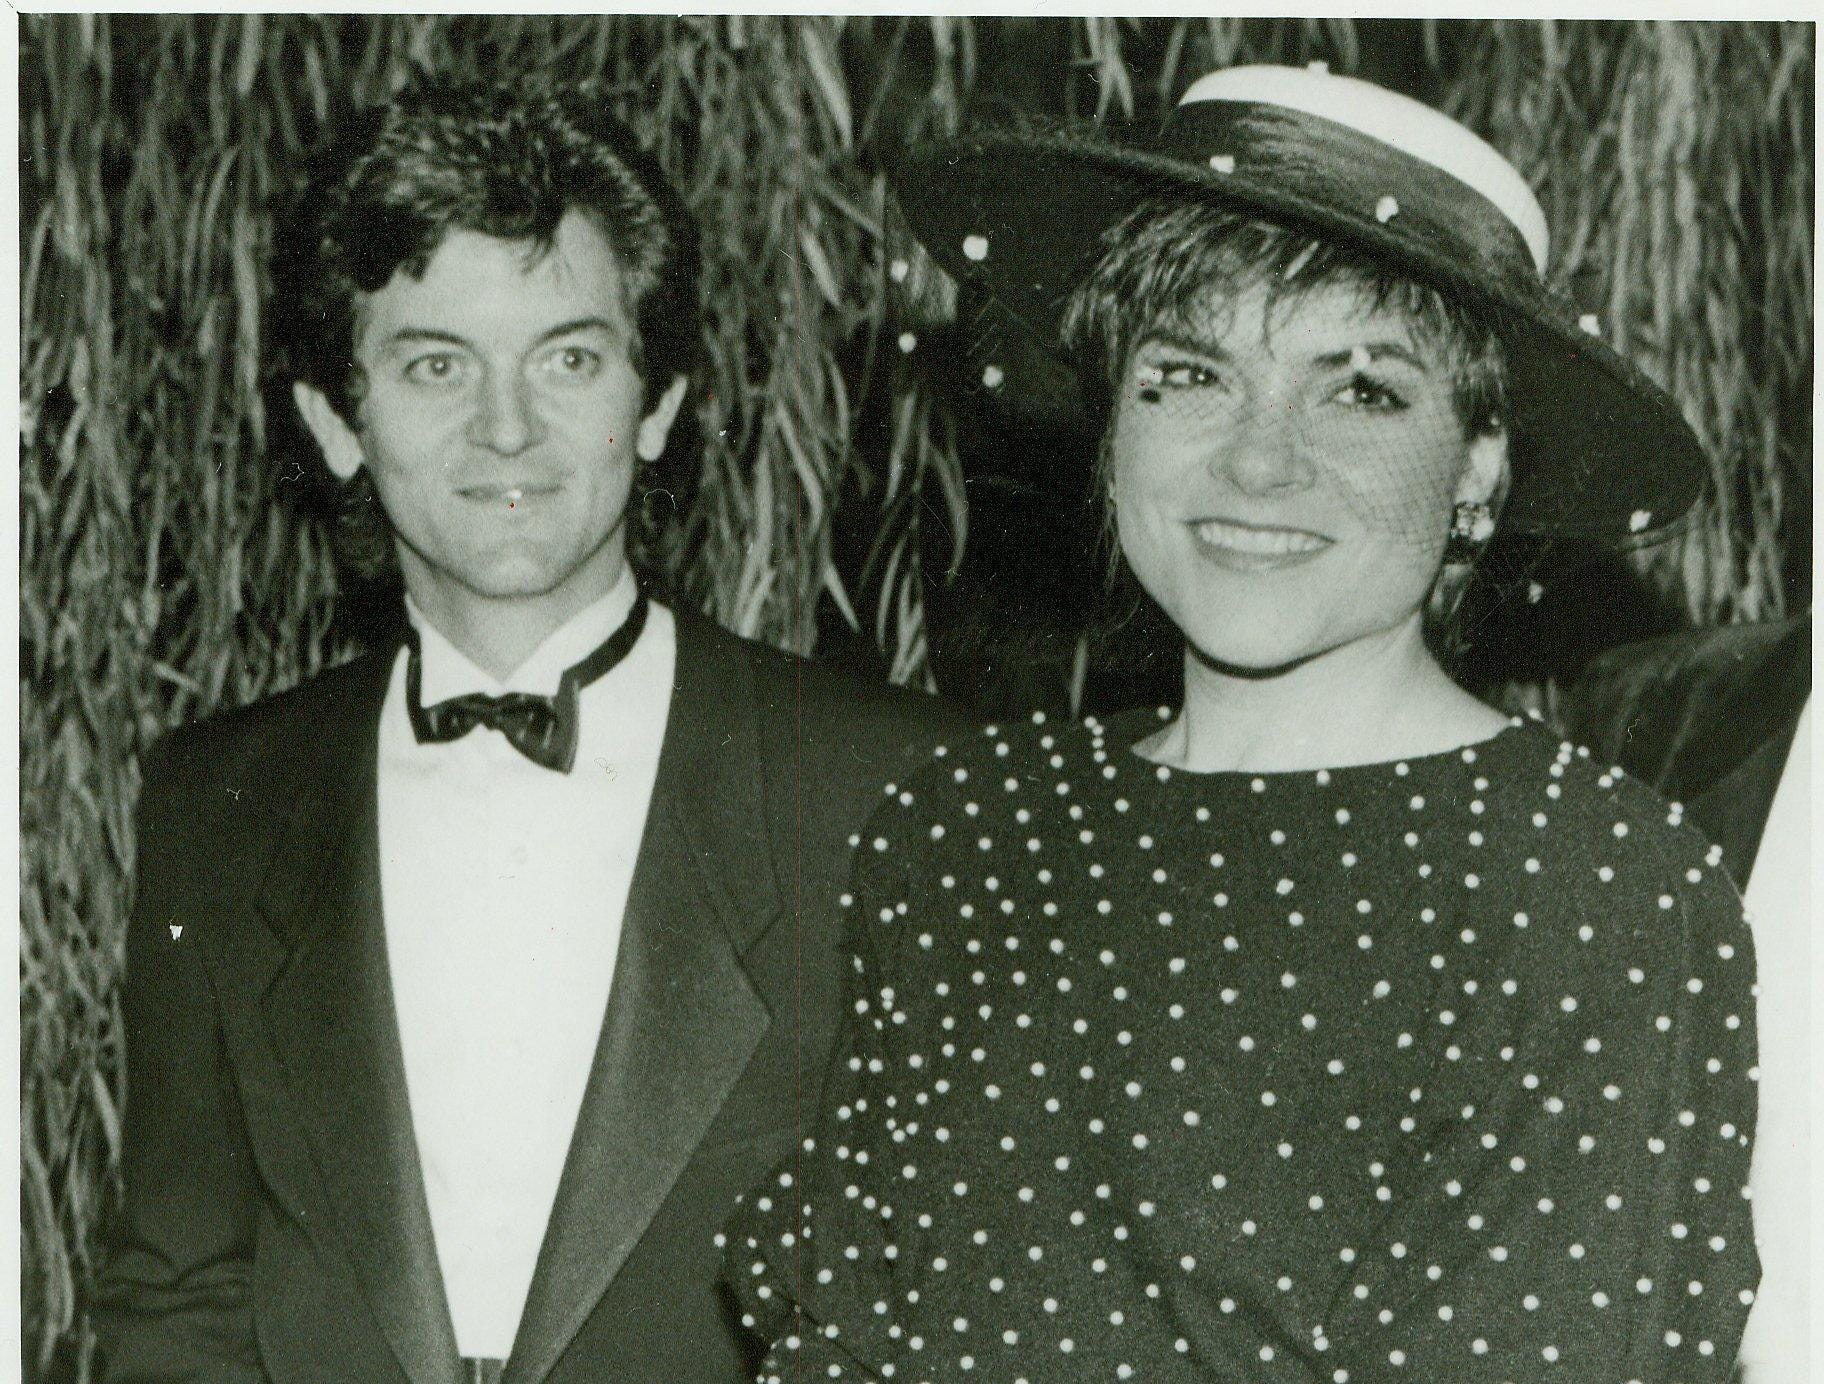 Rodney Crowell and Rosanne Cash were a country-music power couple.